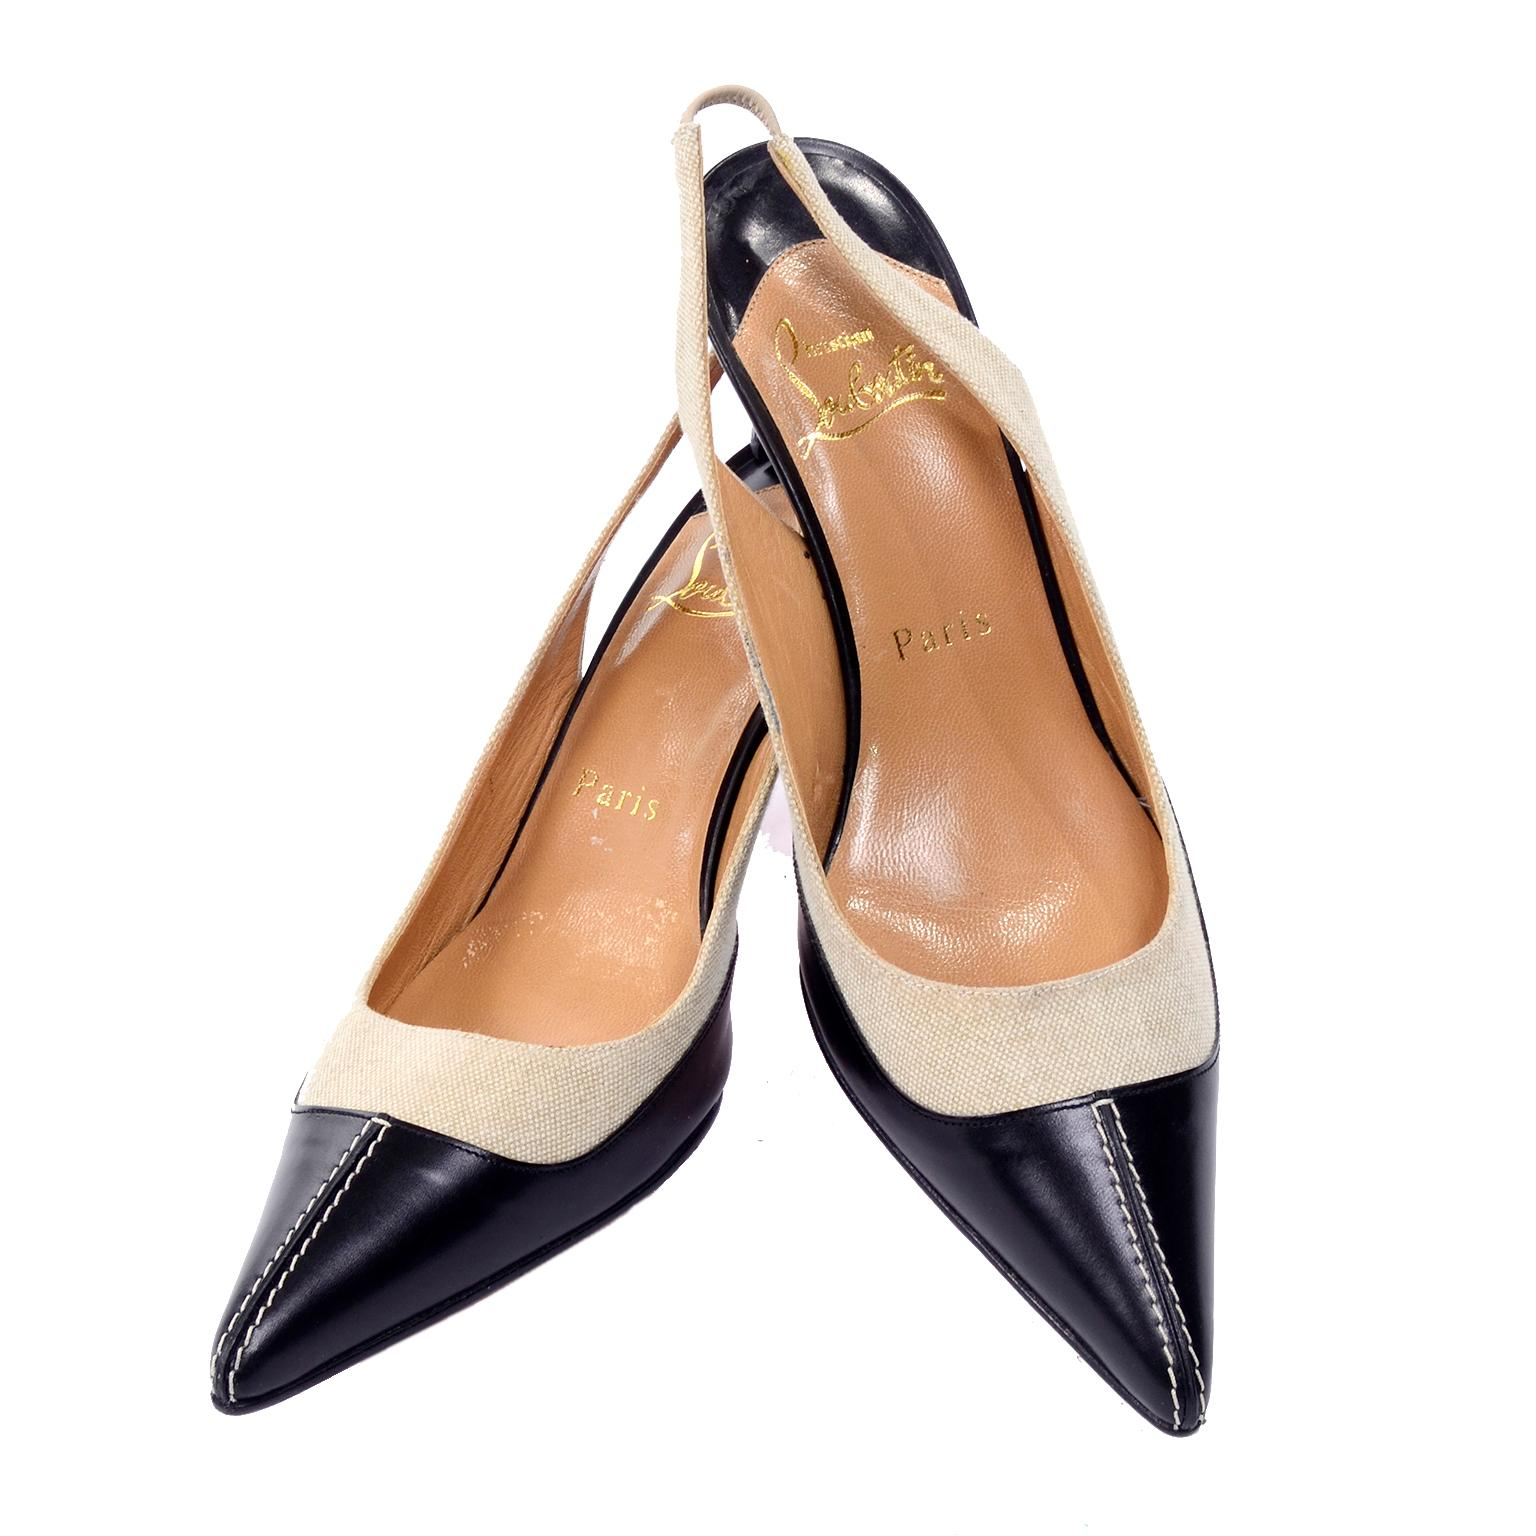 best sneakers ab7af 61814 Christian Louboutin Shoes Slingback Heels in Two Tone Black & Natural Size  38.5